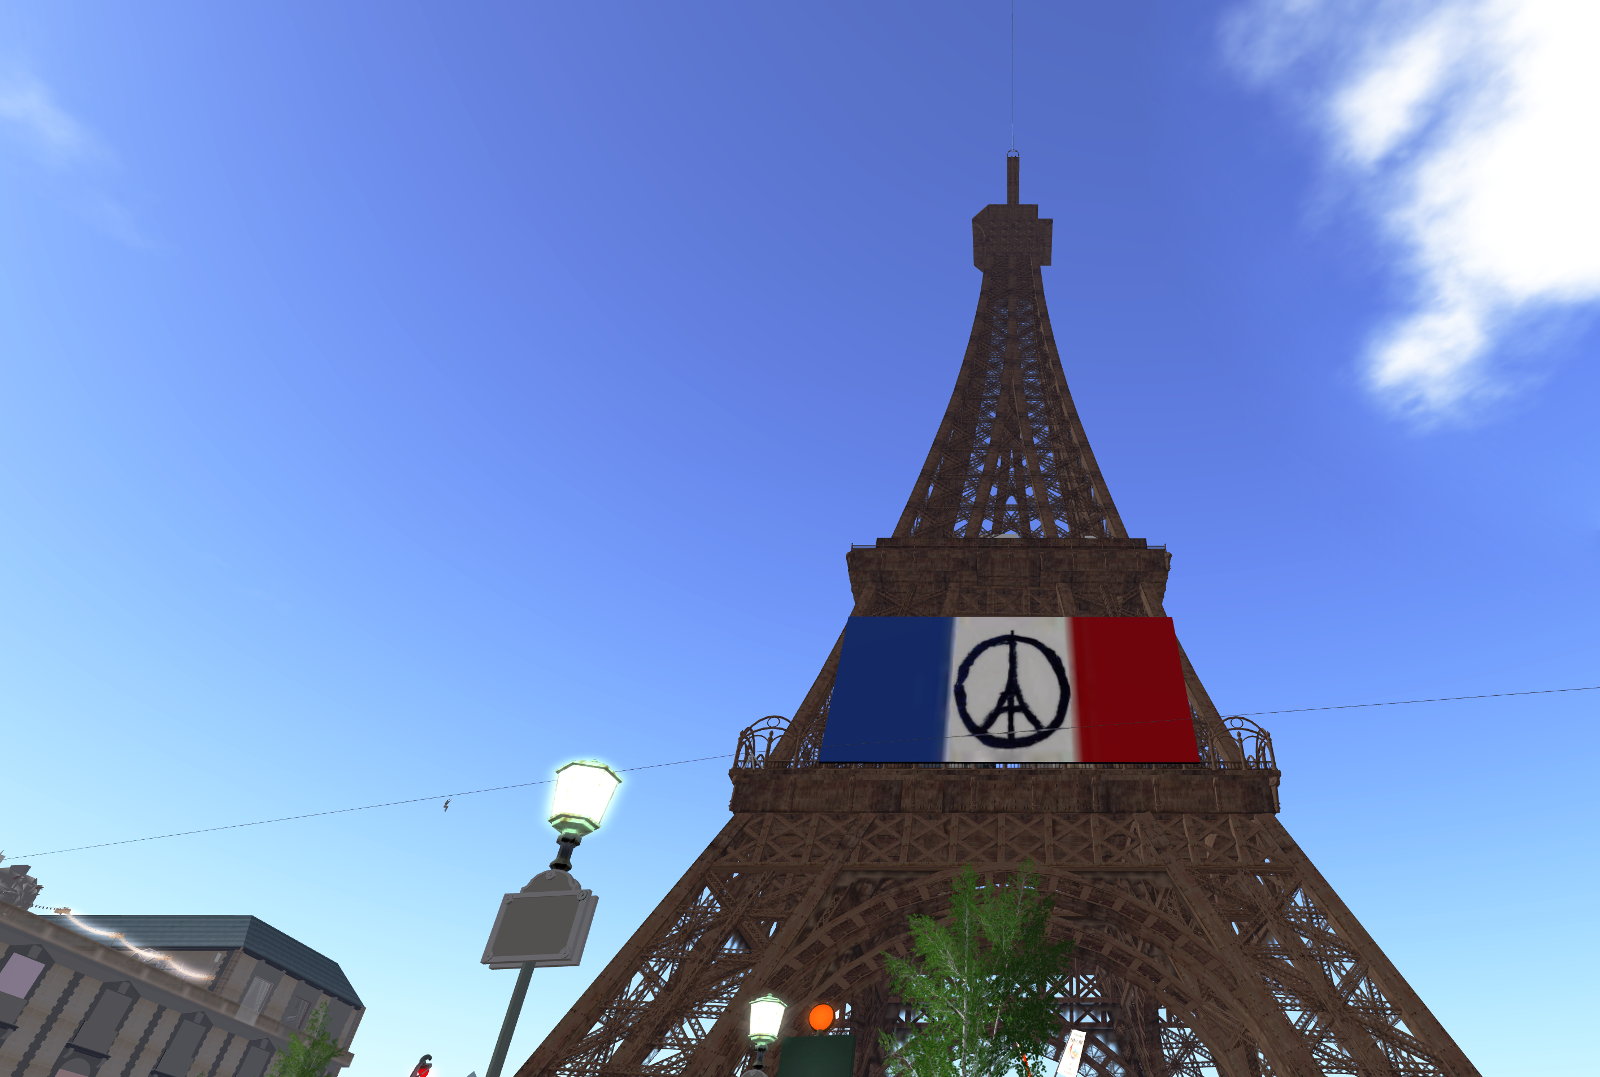 The Eiffel Tower and the Peace for Paris sign applied to the French flag